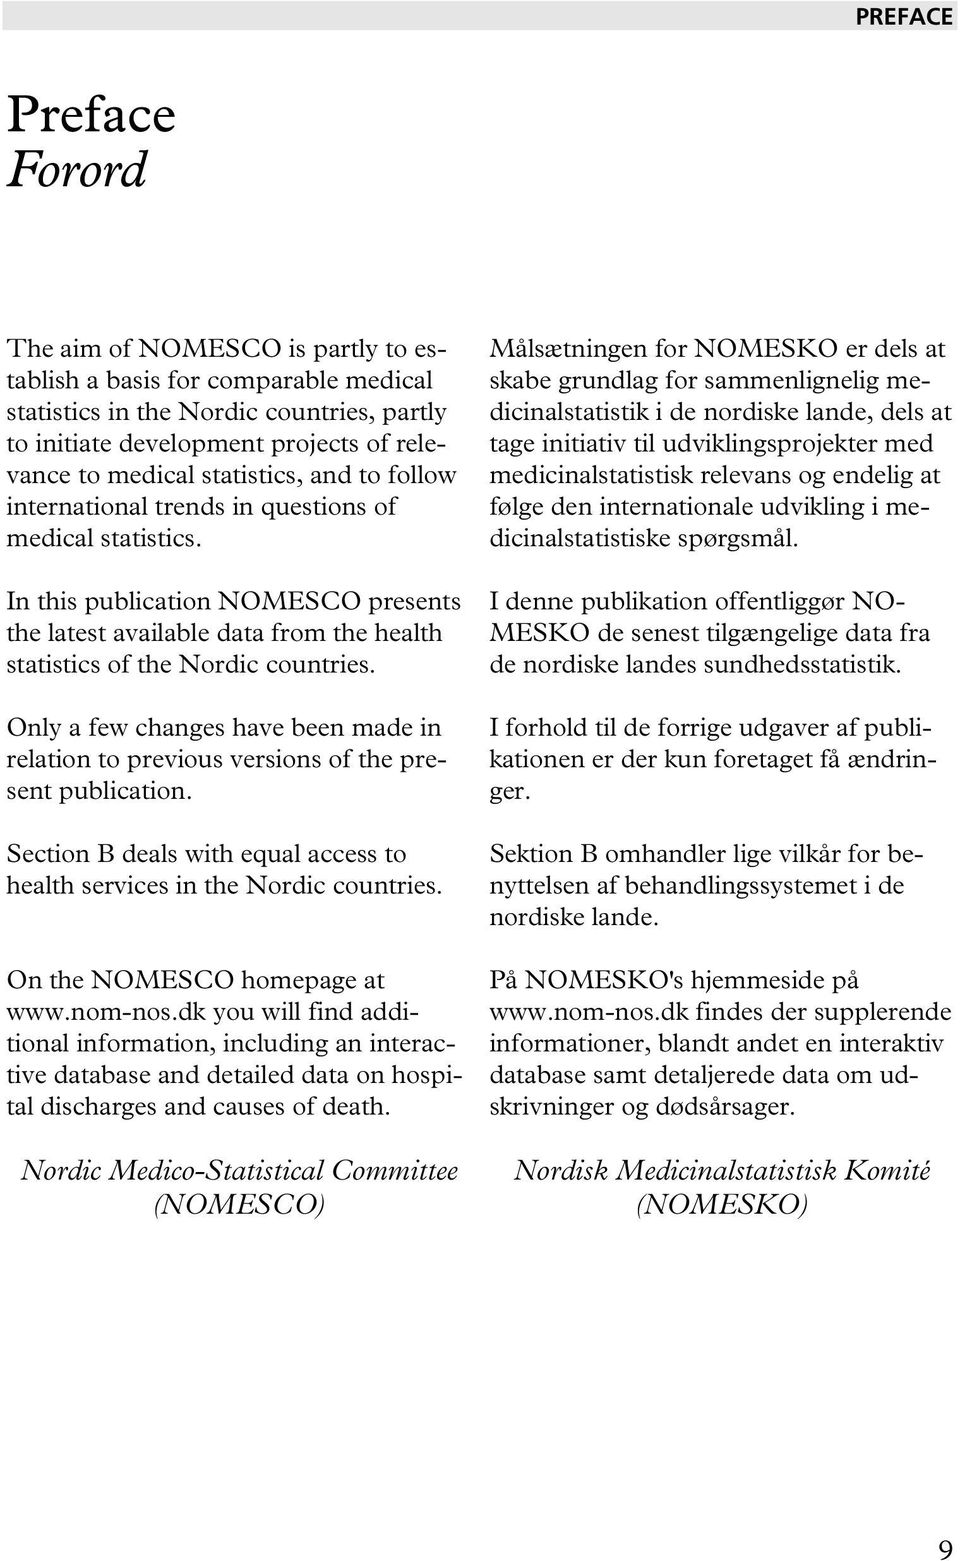 Only a few changes have been made in relation to previous versions of the present publication. Section B deals with equal access to health services in the Nordic countries.